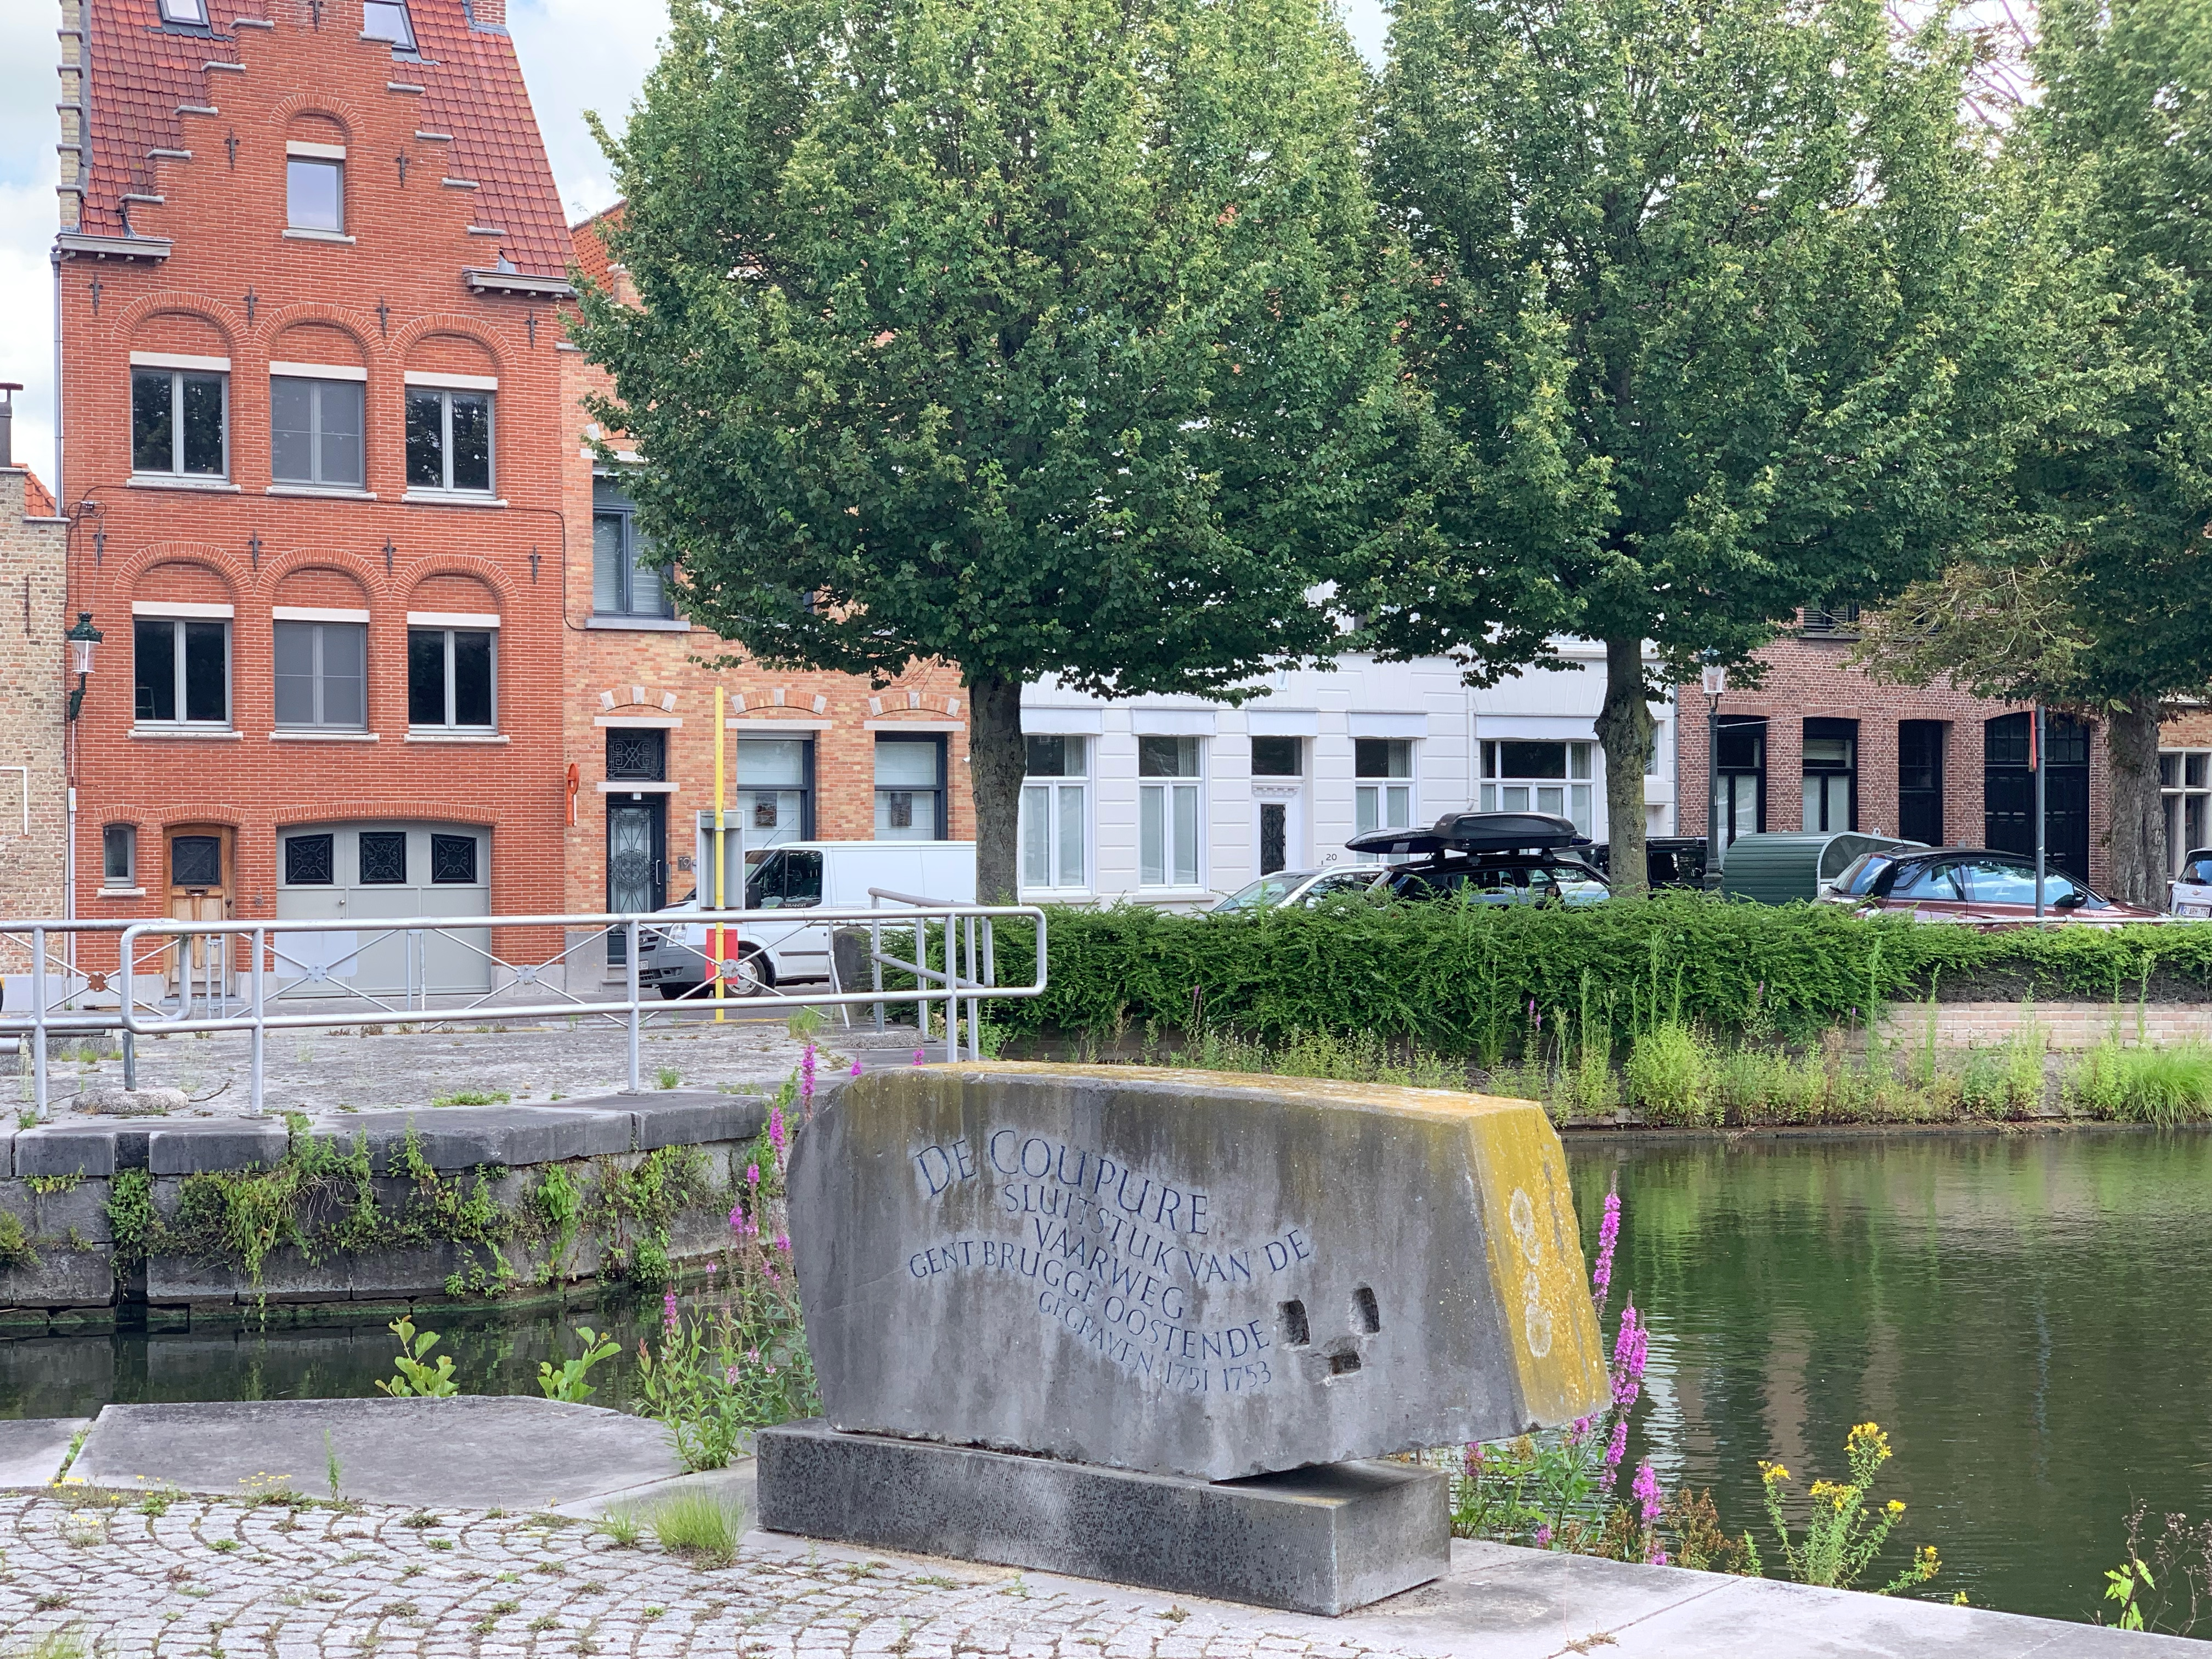 Rock statue on the Canal